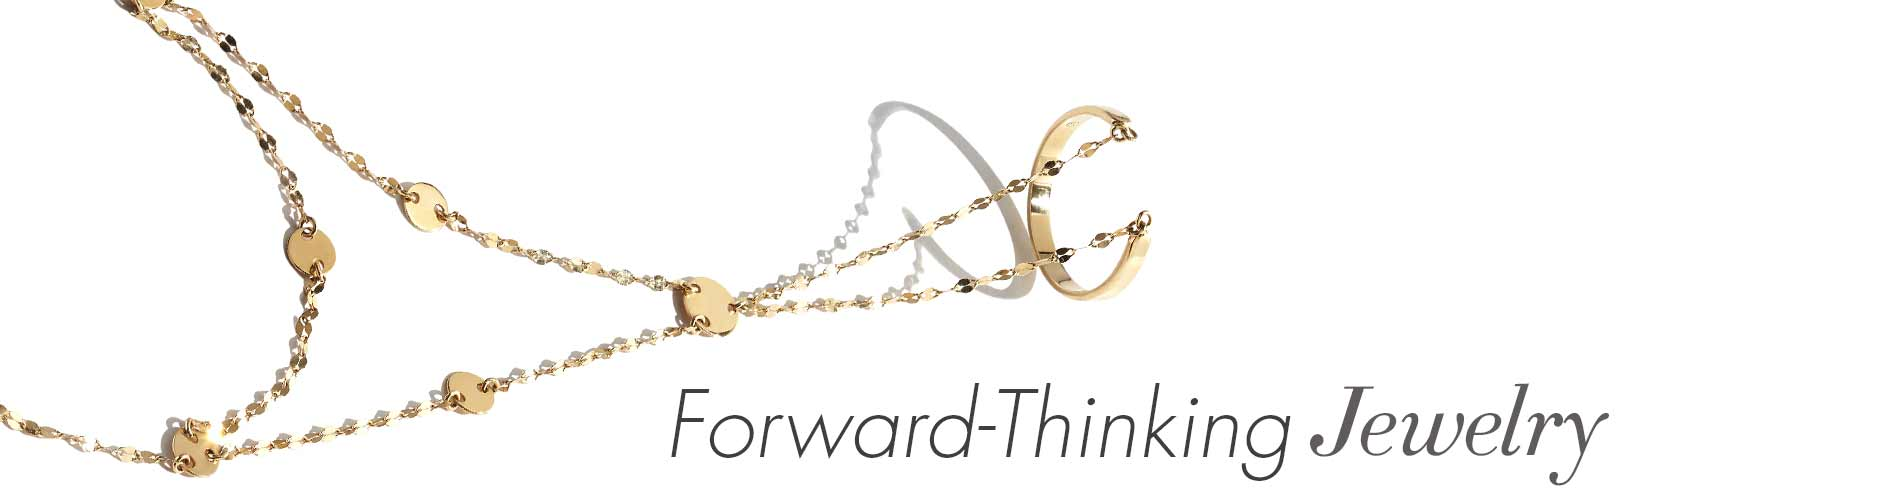 Jewlery Forward Thinking